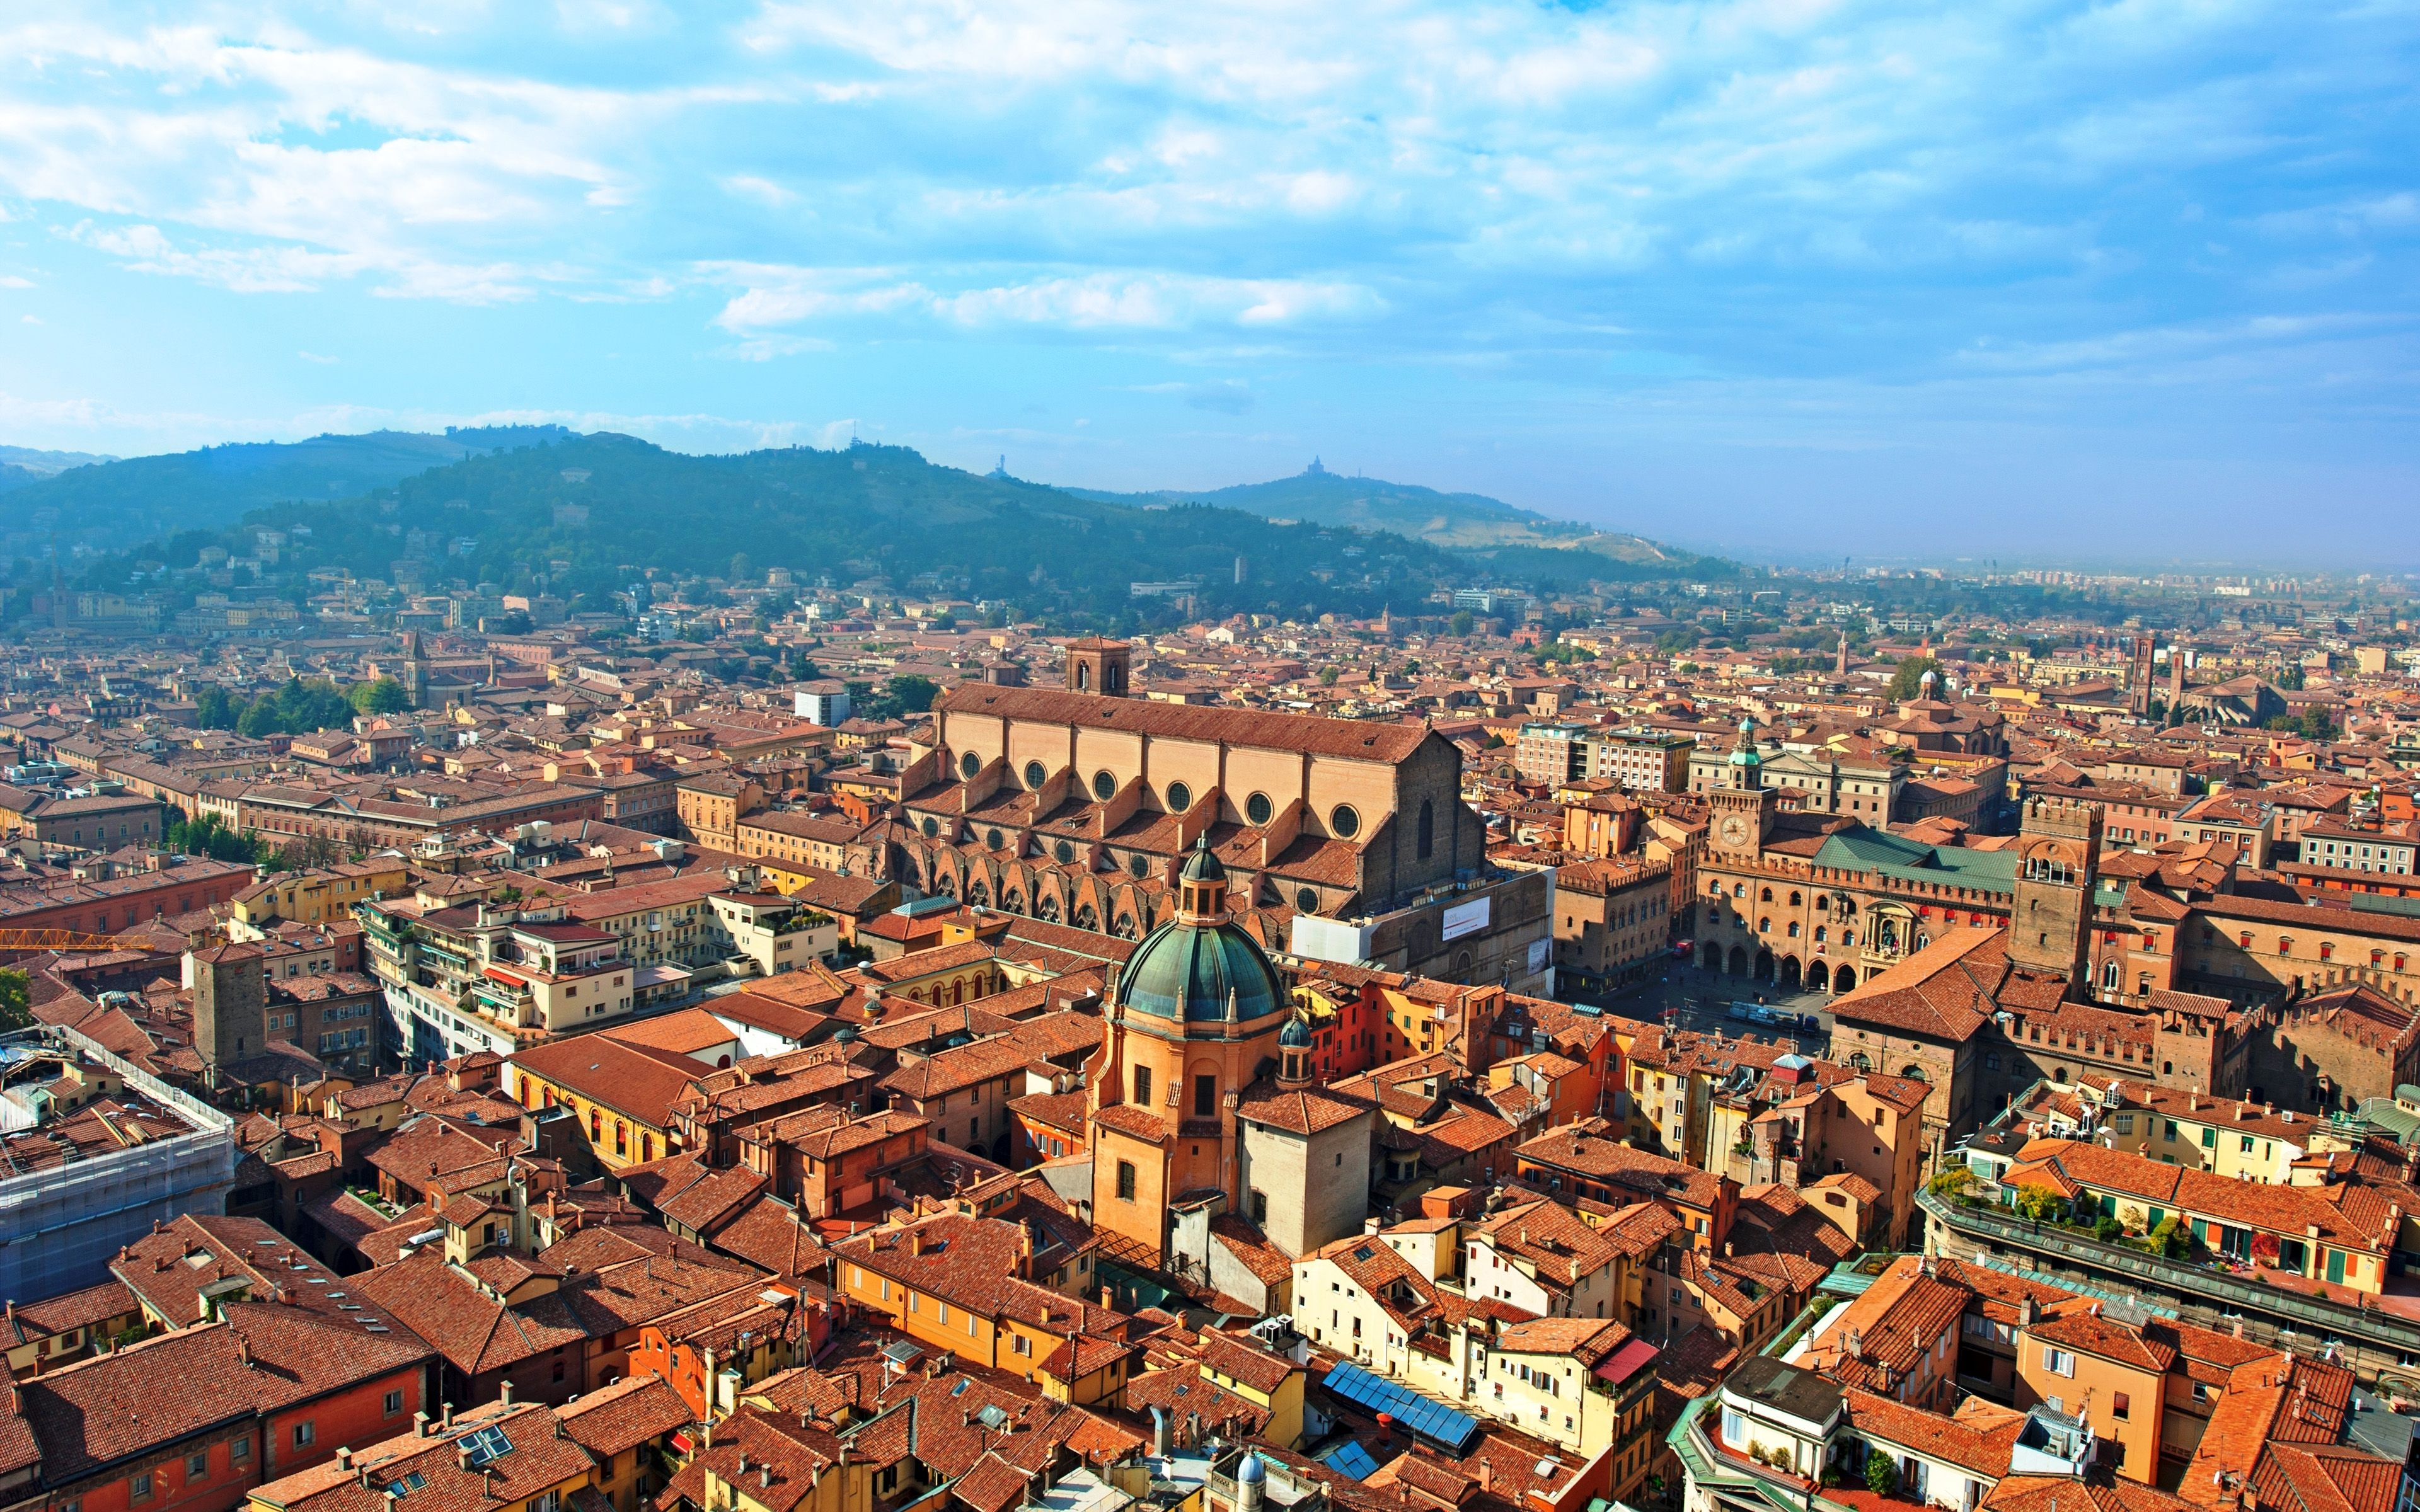 Download wallpapers Bologna, 4k, summer, buildings, cityscapes